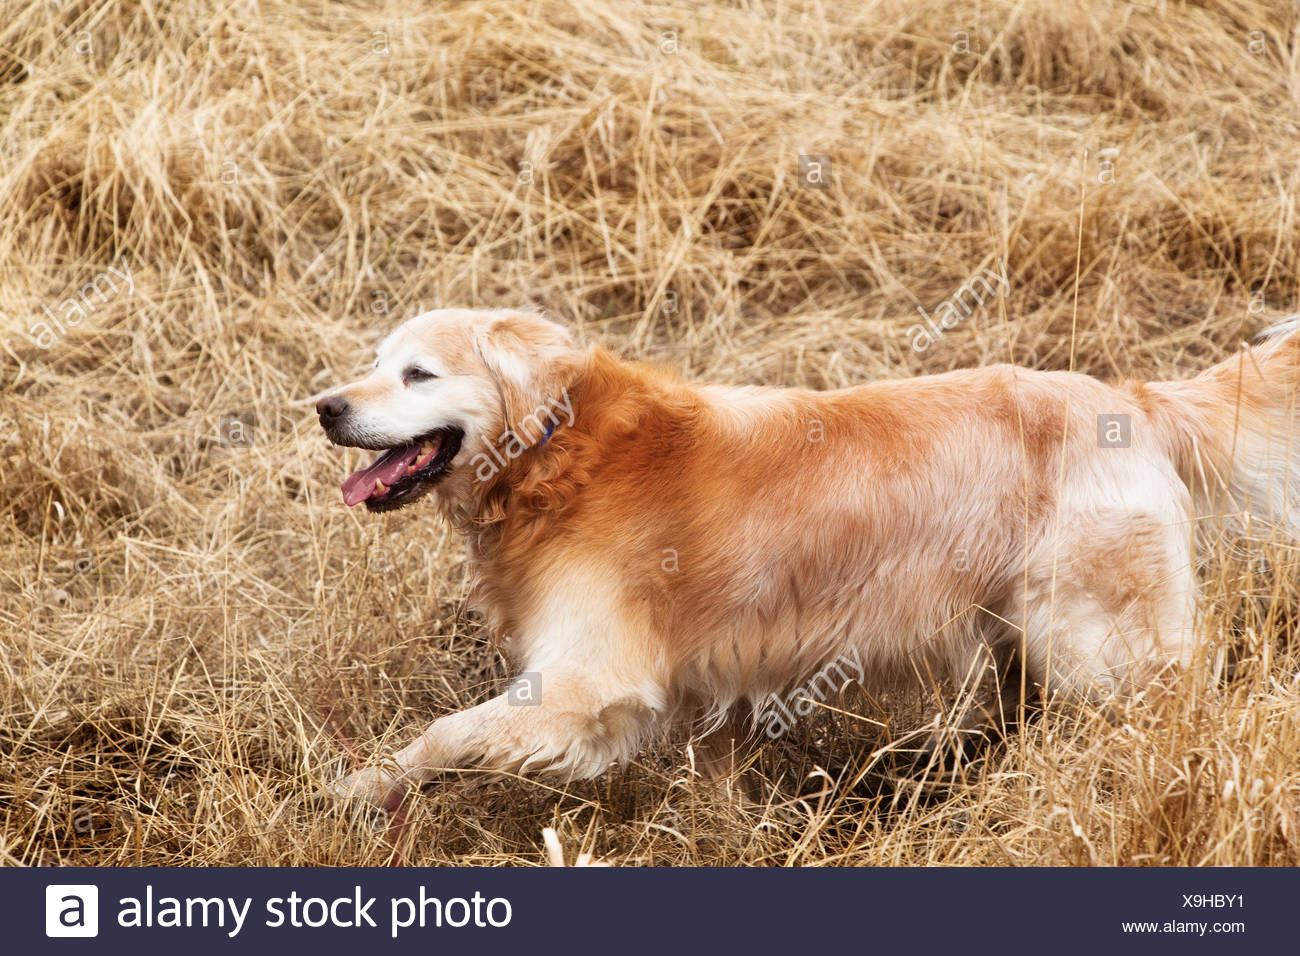 Dogs In Field Pets Stock P Os Dogs In Field Pets Stock